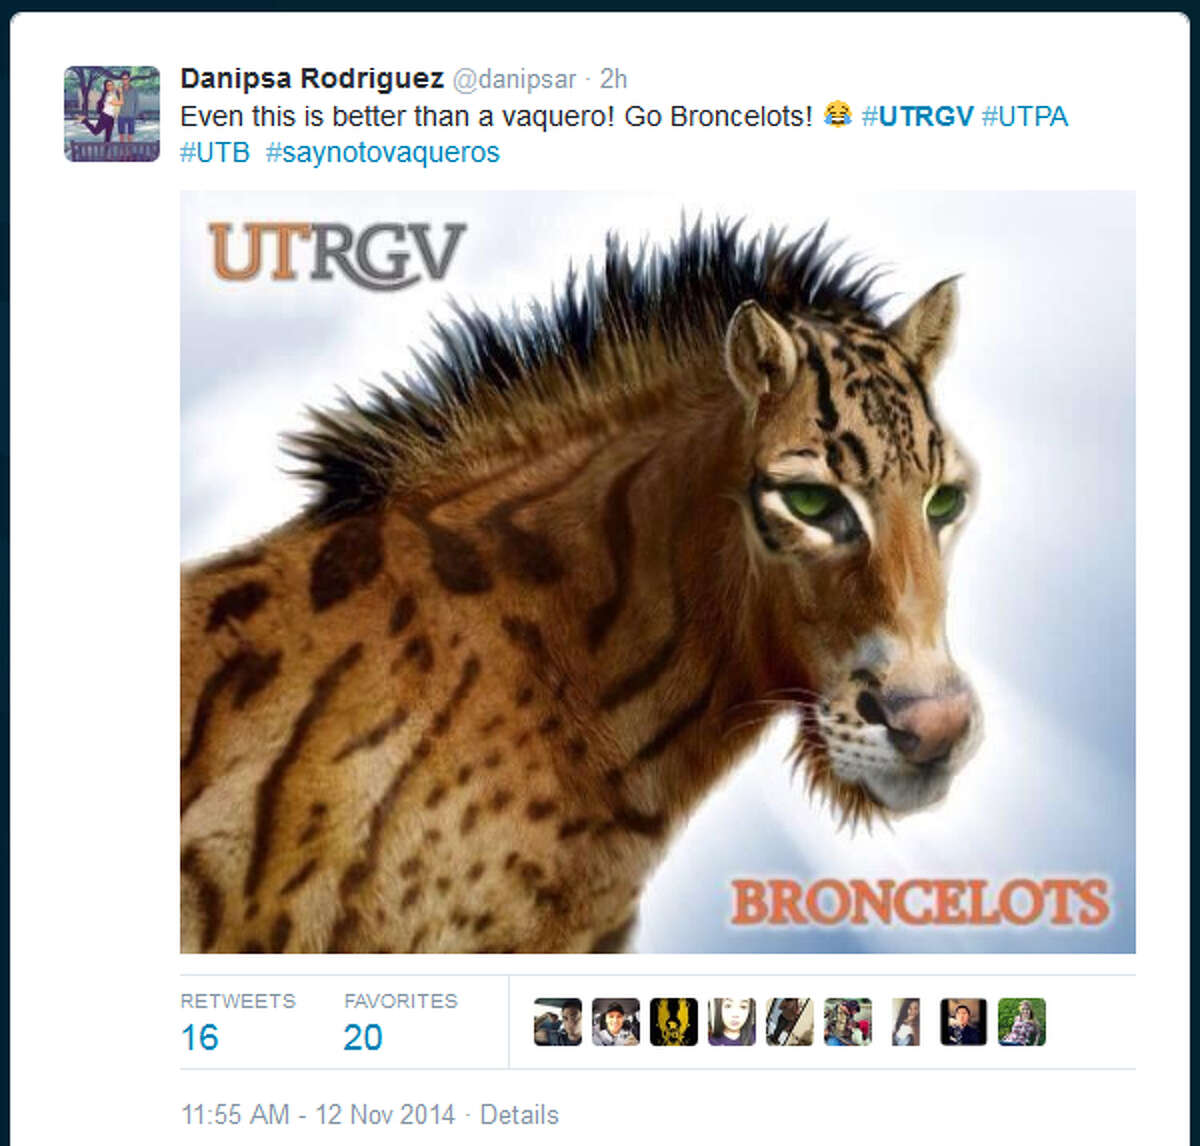 University of Texas Rio Grande Valley President Guy Bailey recommended to UT regents on Wednesday that the new university adopt Vaqueros as its mascot. Students wasted no time lampooning the suggestion on Twitter.